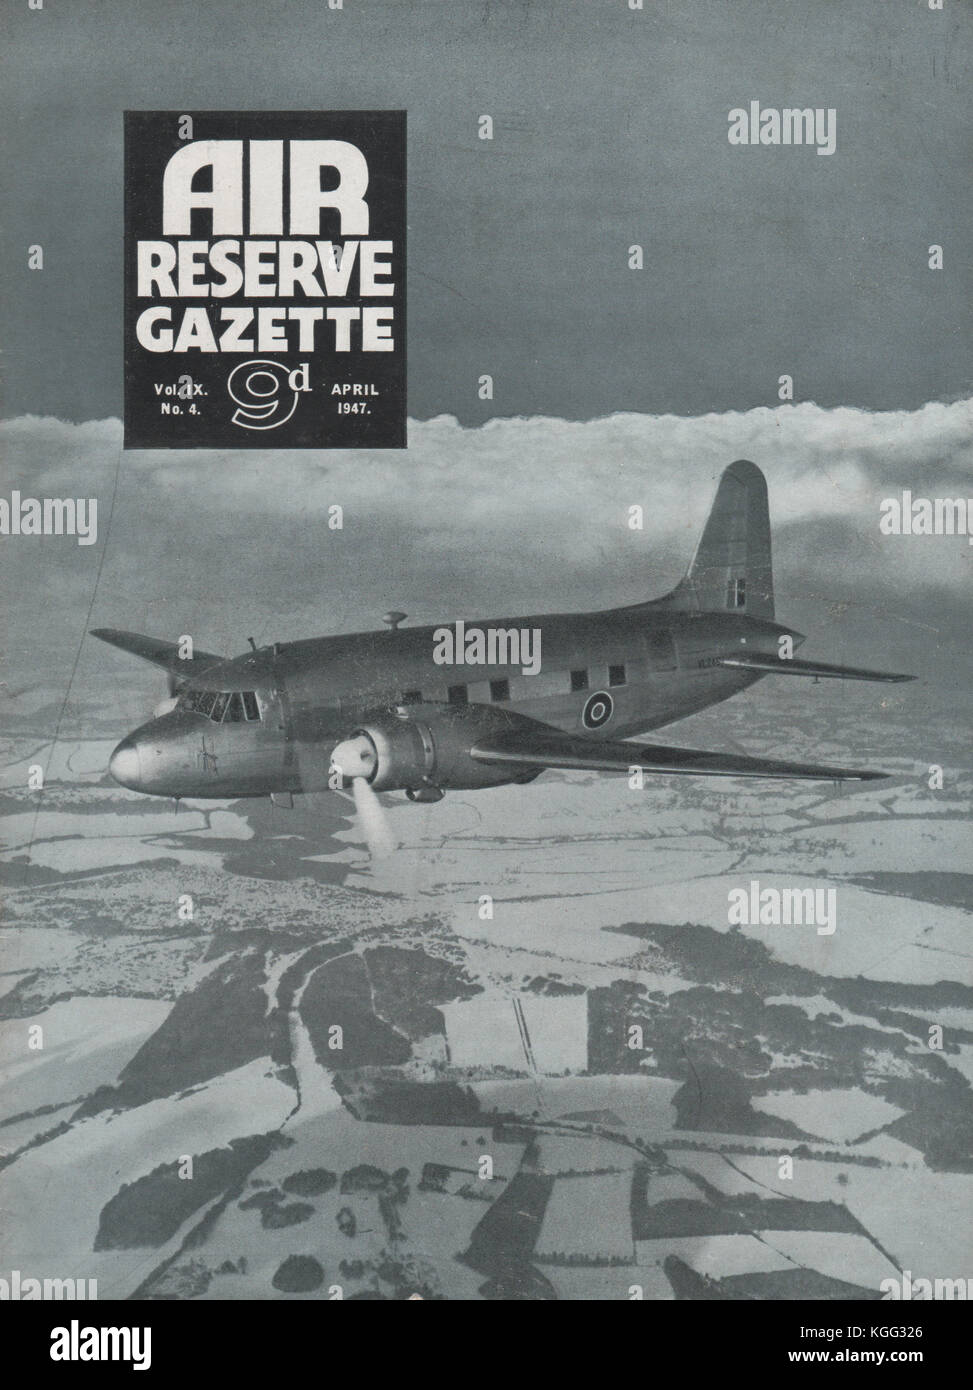 Vintage Air Reserve Gazette magazine cover dated April 1947 showing a Vickers Viking transport aircraft of the Royal - Stock Image